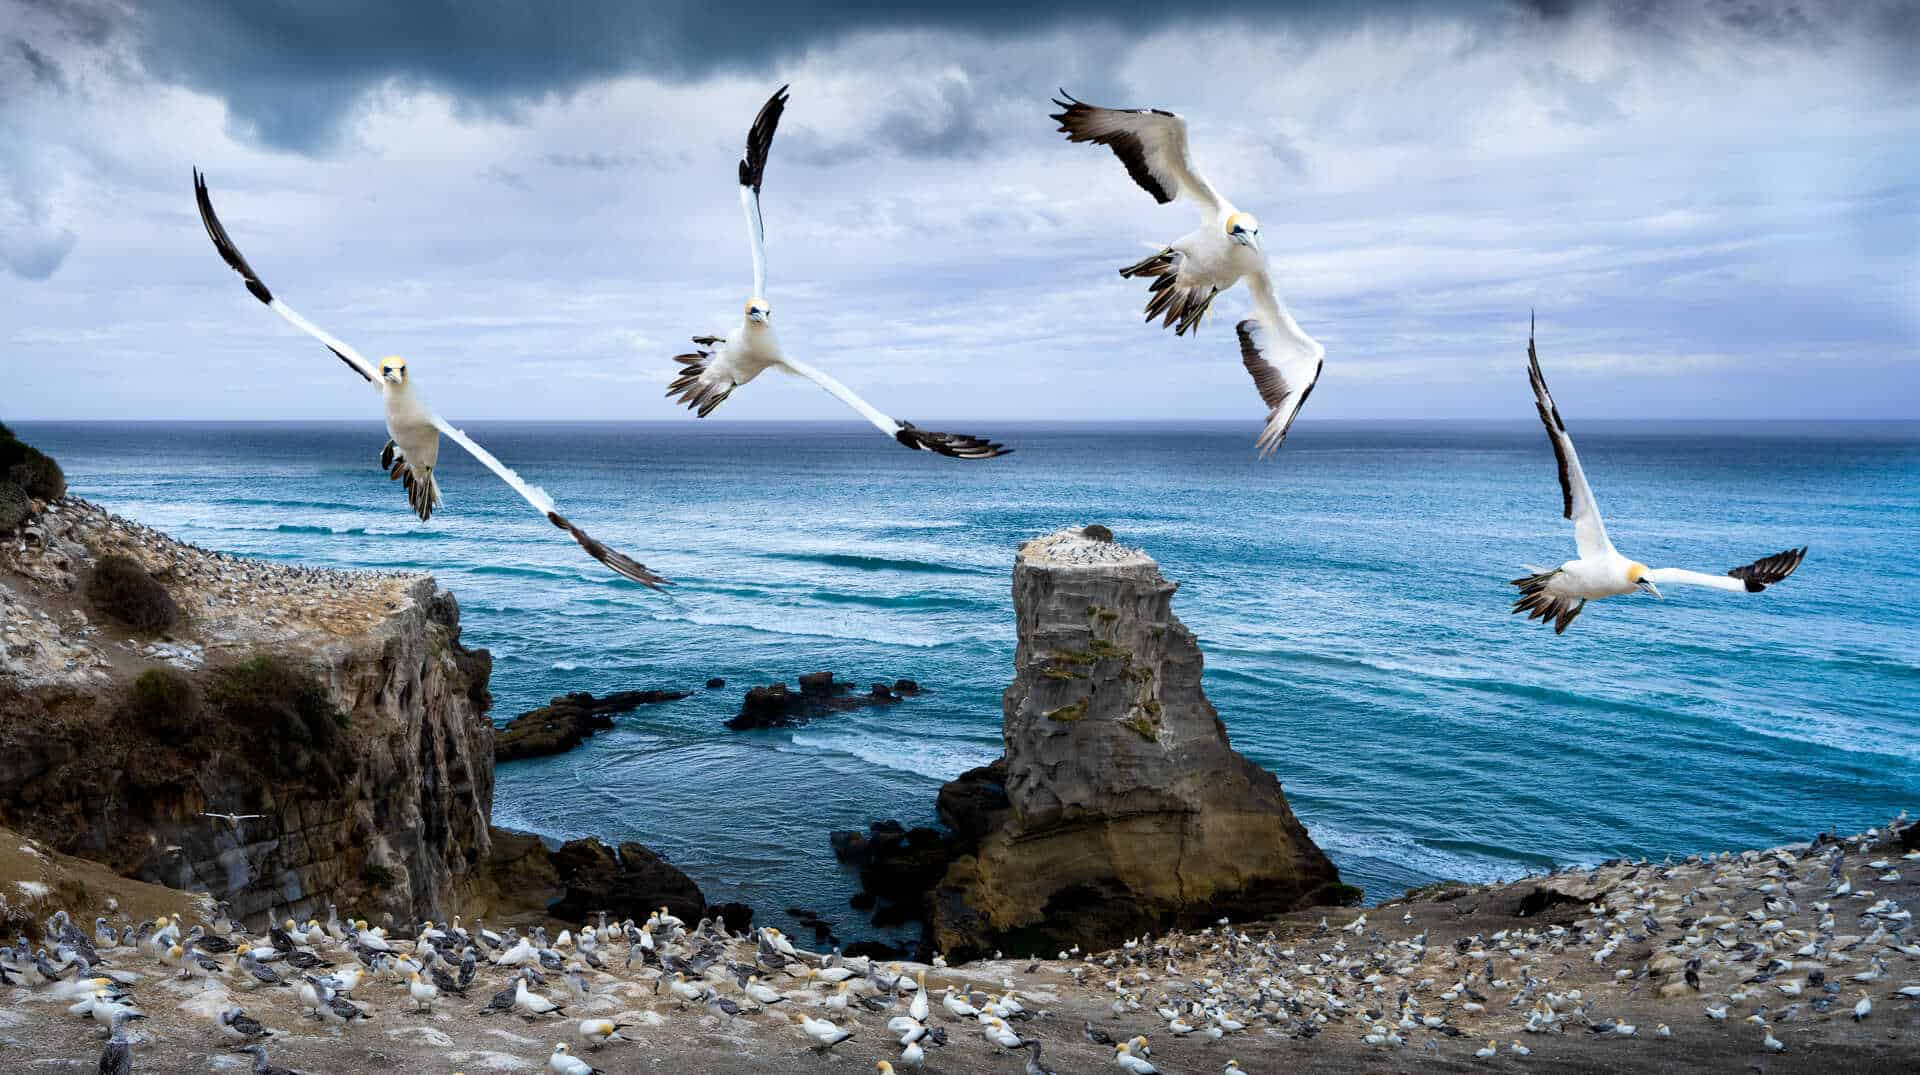 Gannet Colony - Muriwai, Auckland, New Zealand